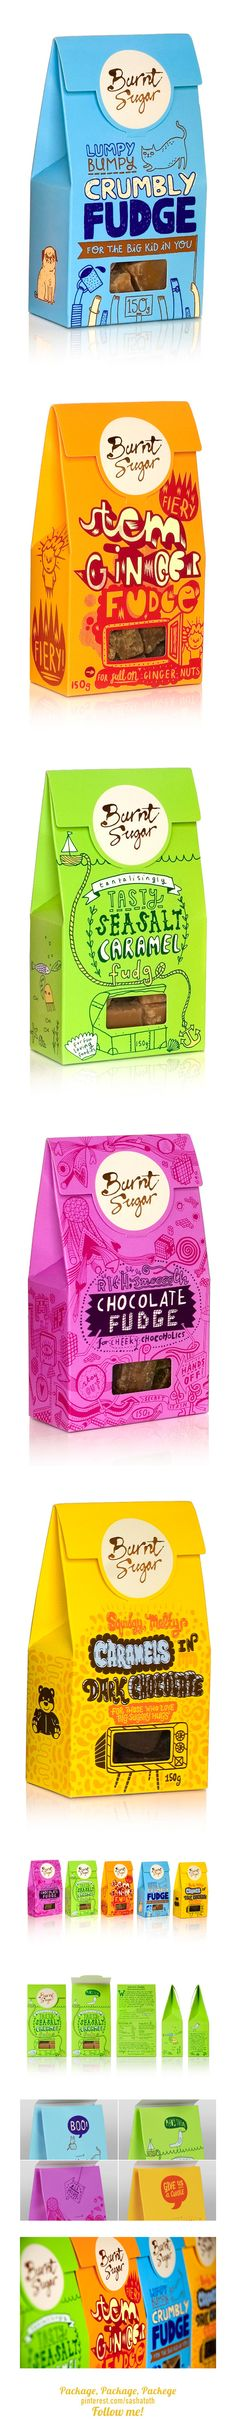 Great colours! fudge packaging